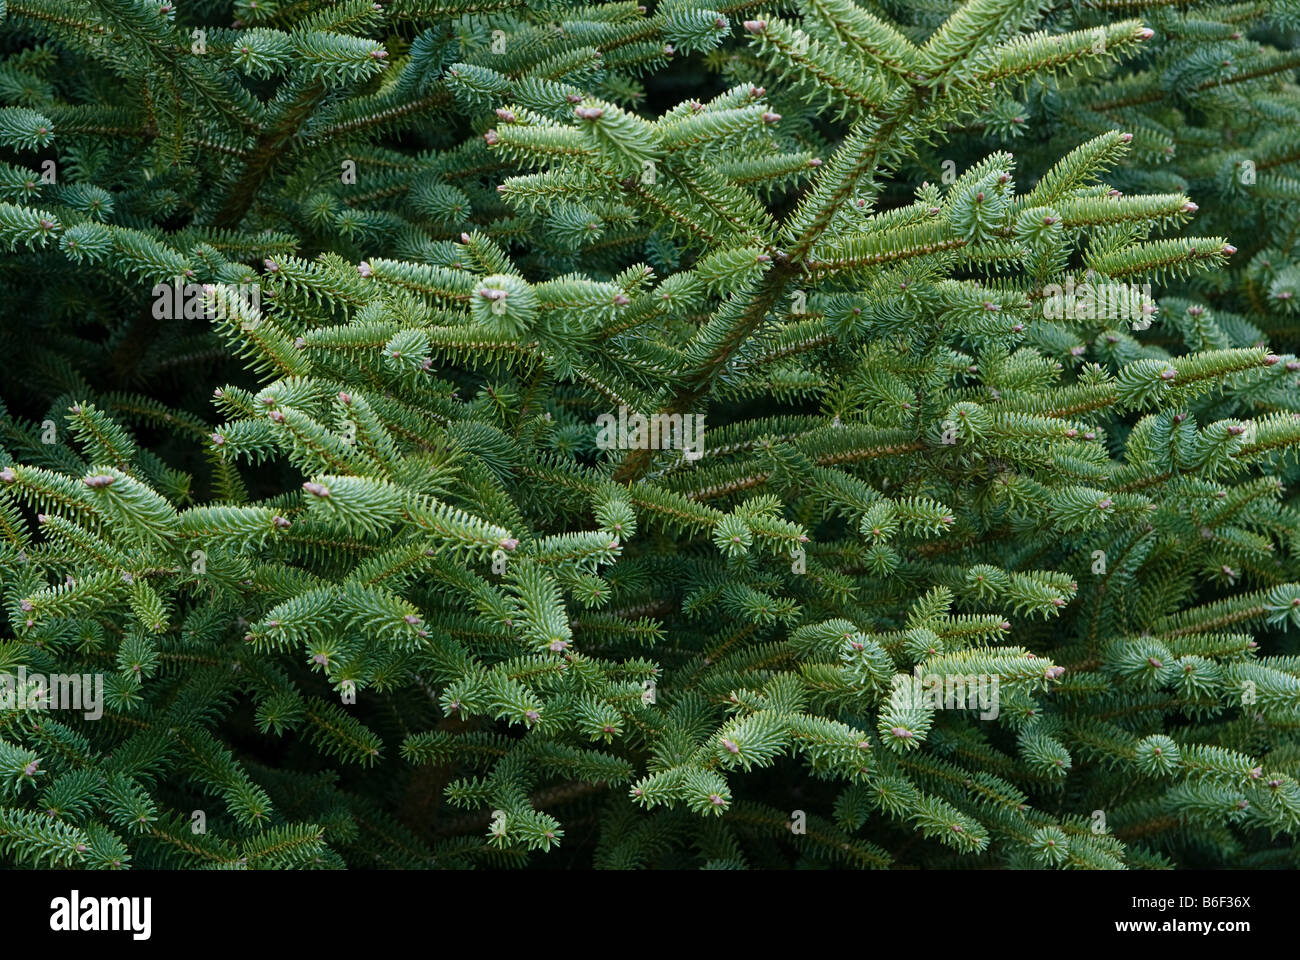 A branch of conifer tree at Mount Ruapehu, Central North Island, New Zealand - Stock Image